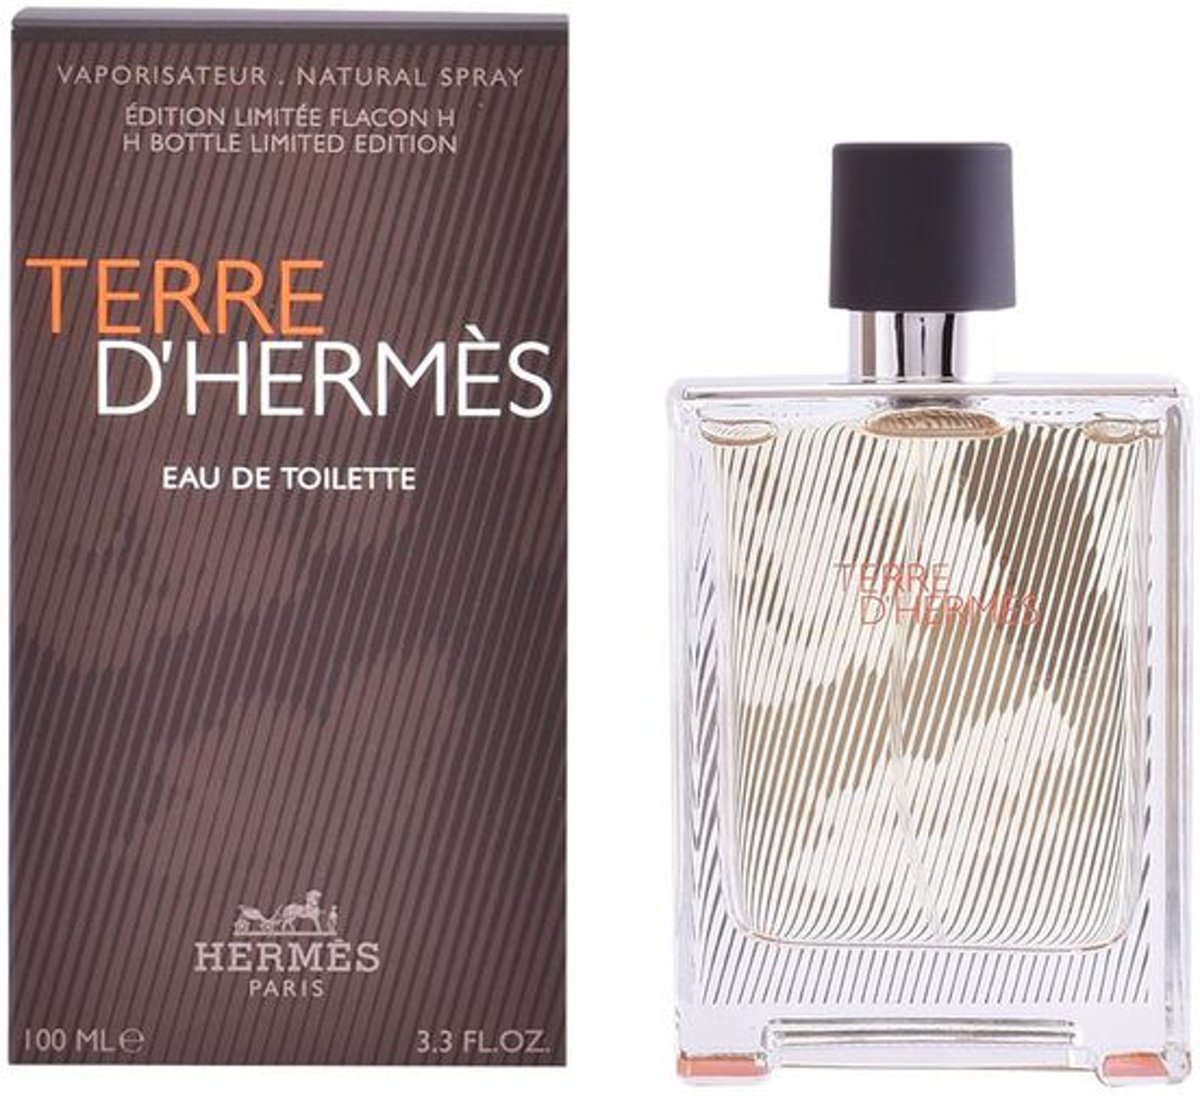 Hermes - Terre DHermes - Bottle Limited Edition - 100 ml Eau de Toilette